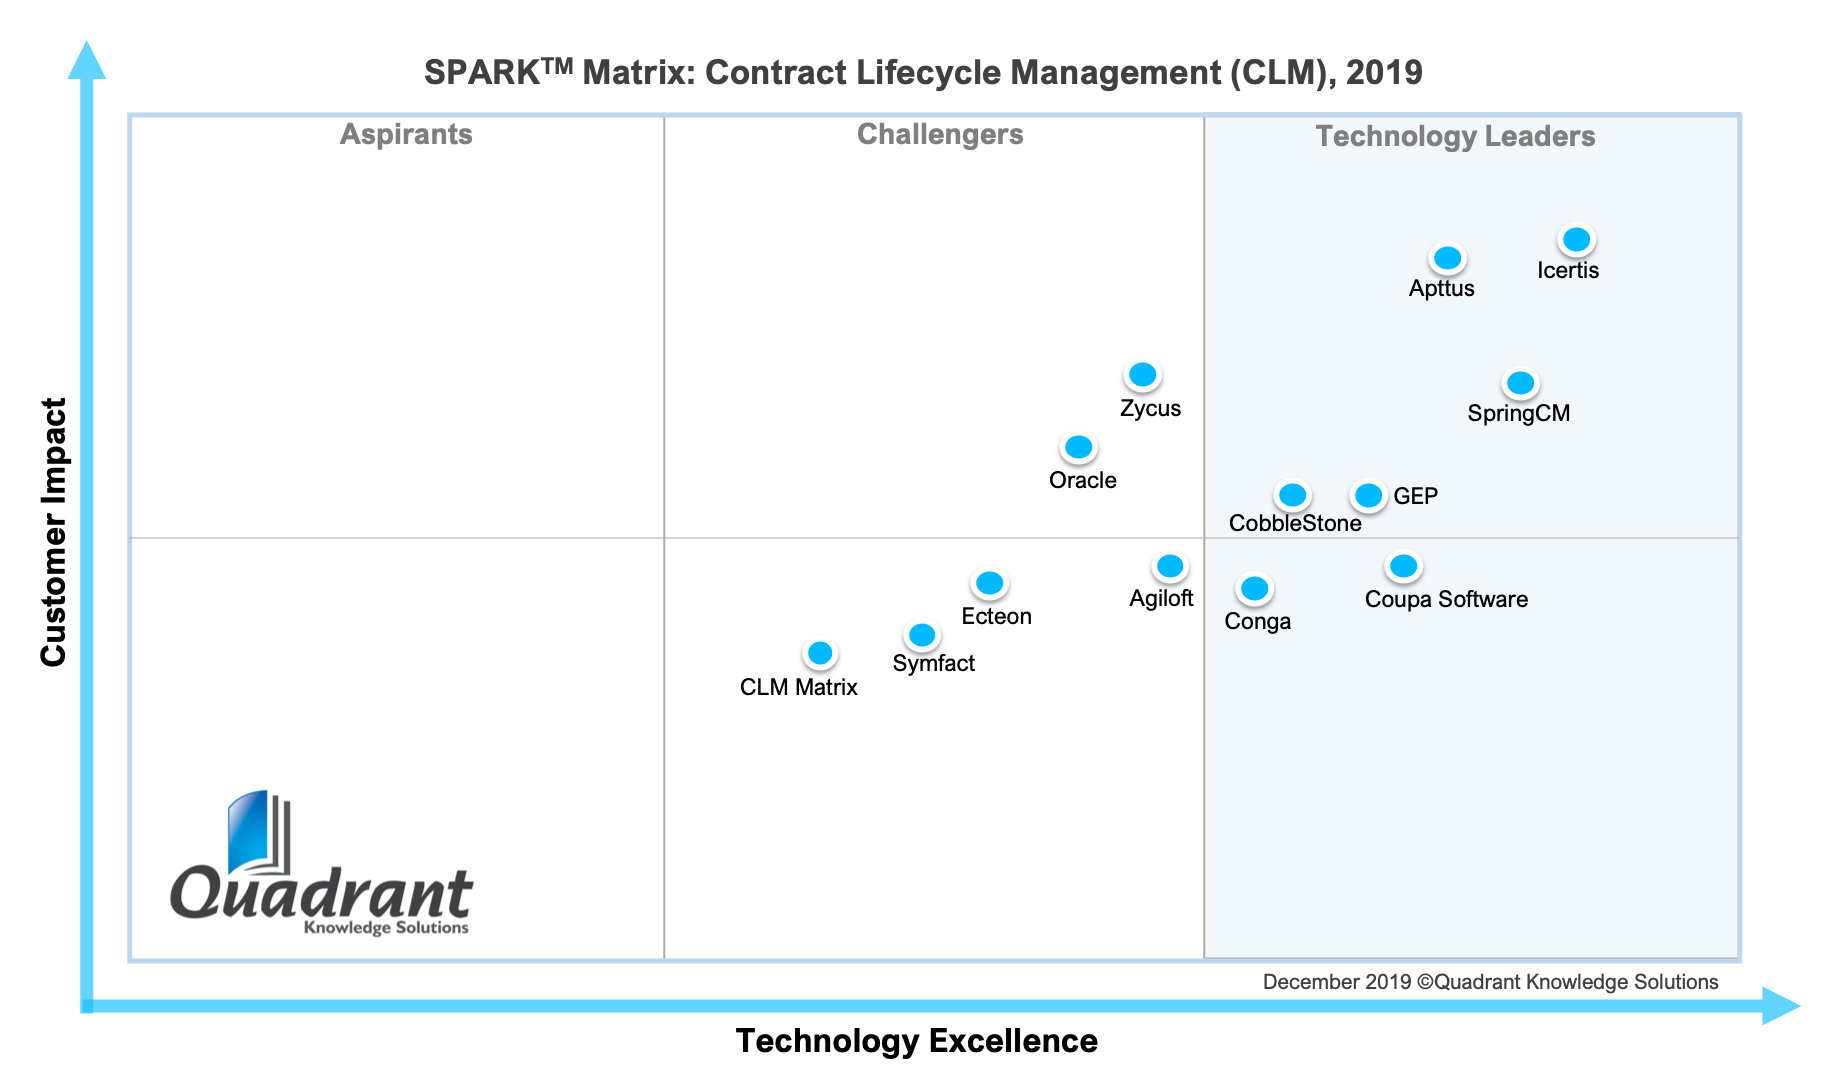 2019 SPARK Matrix_Contract Lifecycle Management_CLM_Quadrant Knowledge Solutions